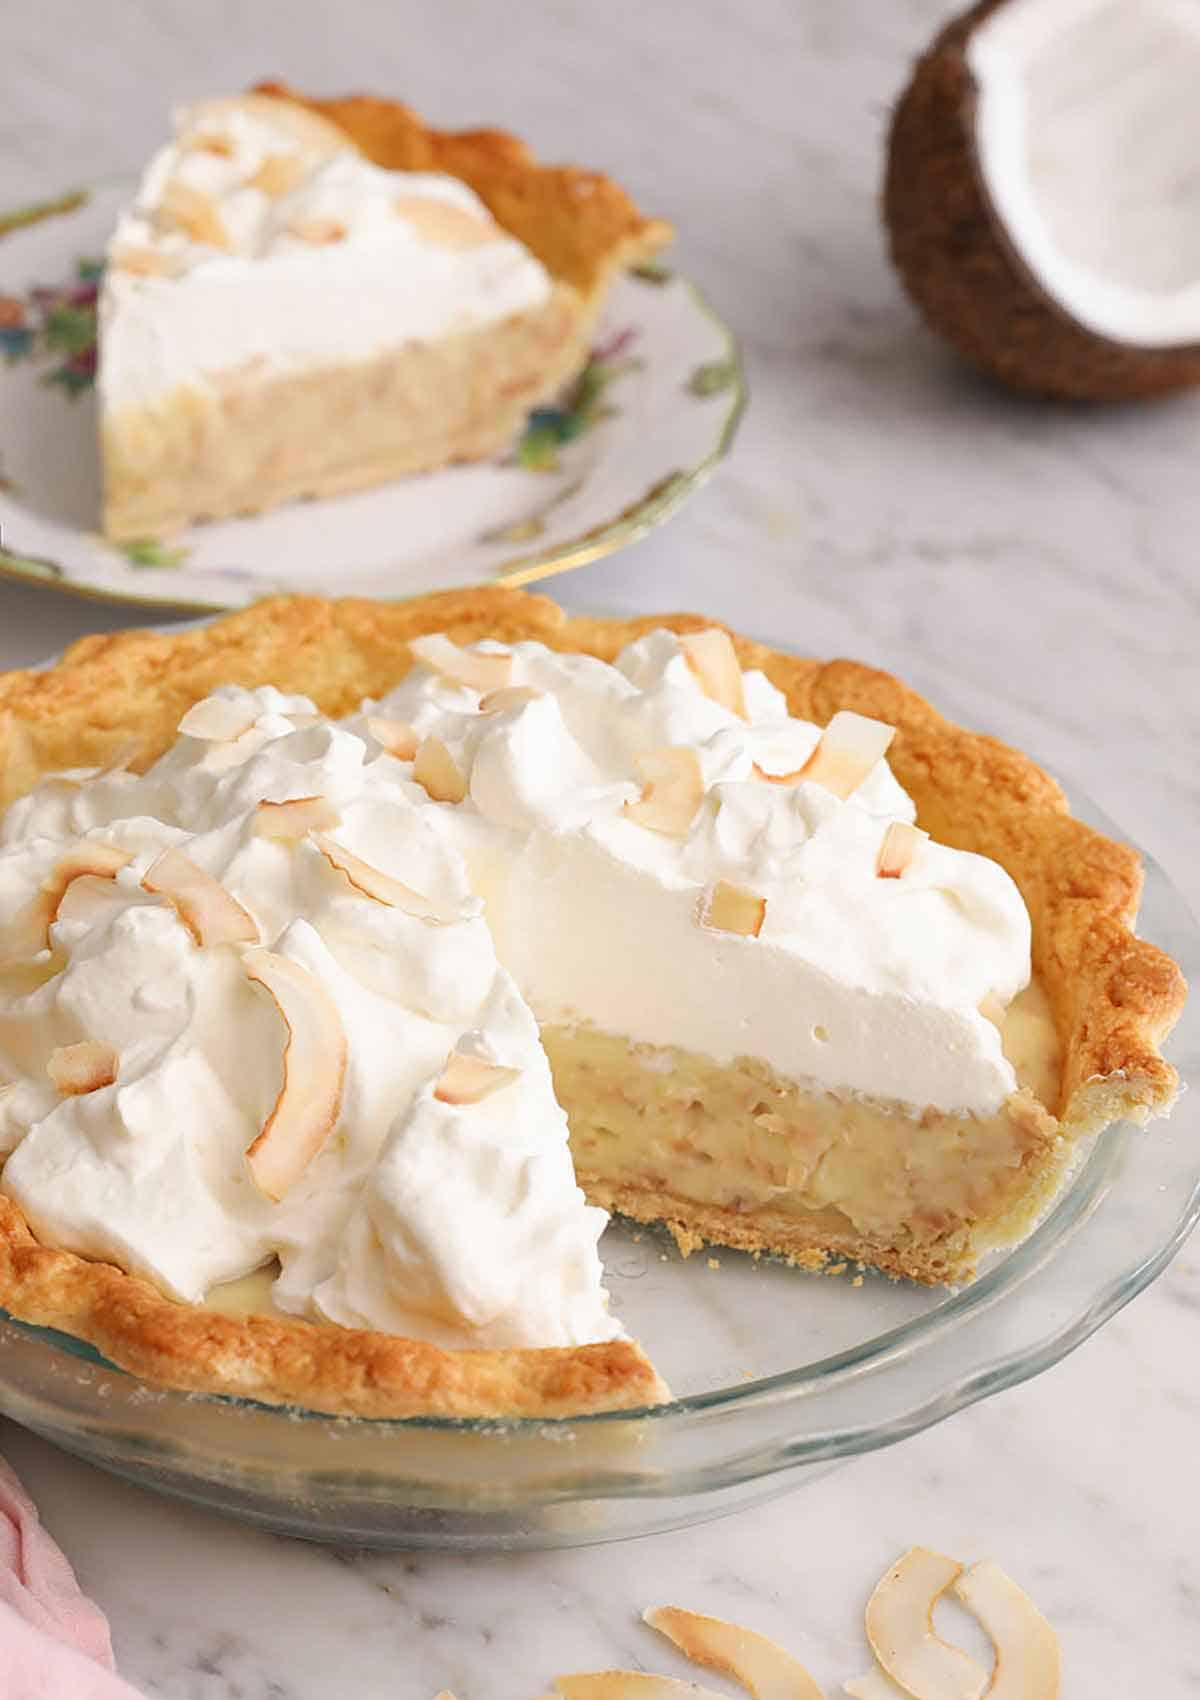 A coconut cream pie in a glass pie dish with a slice cut out.